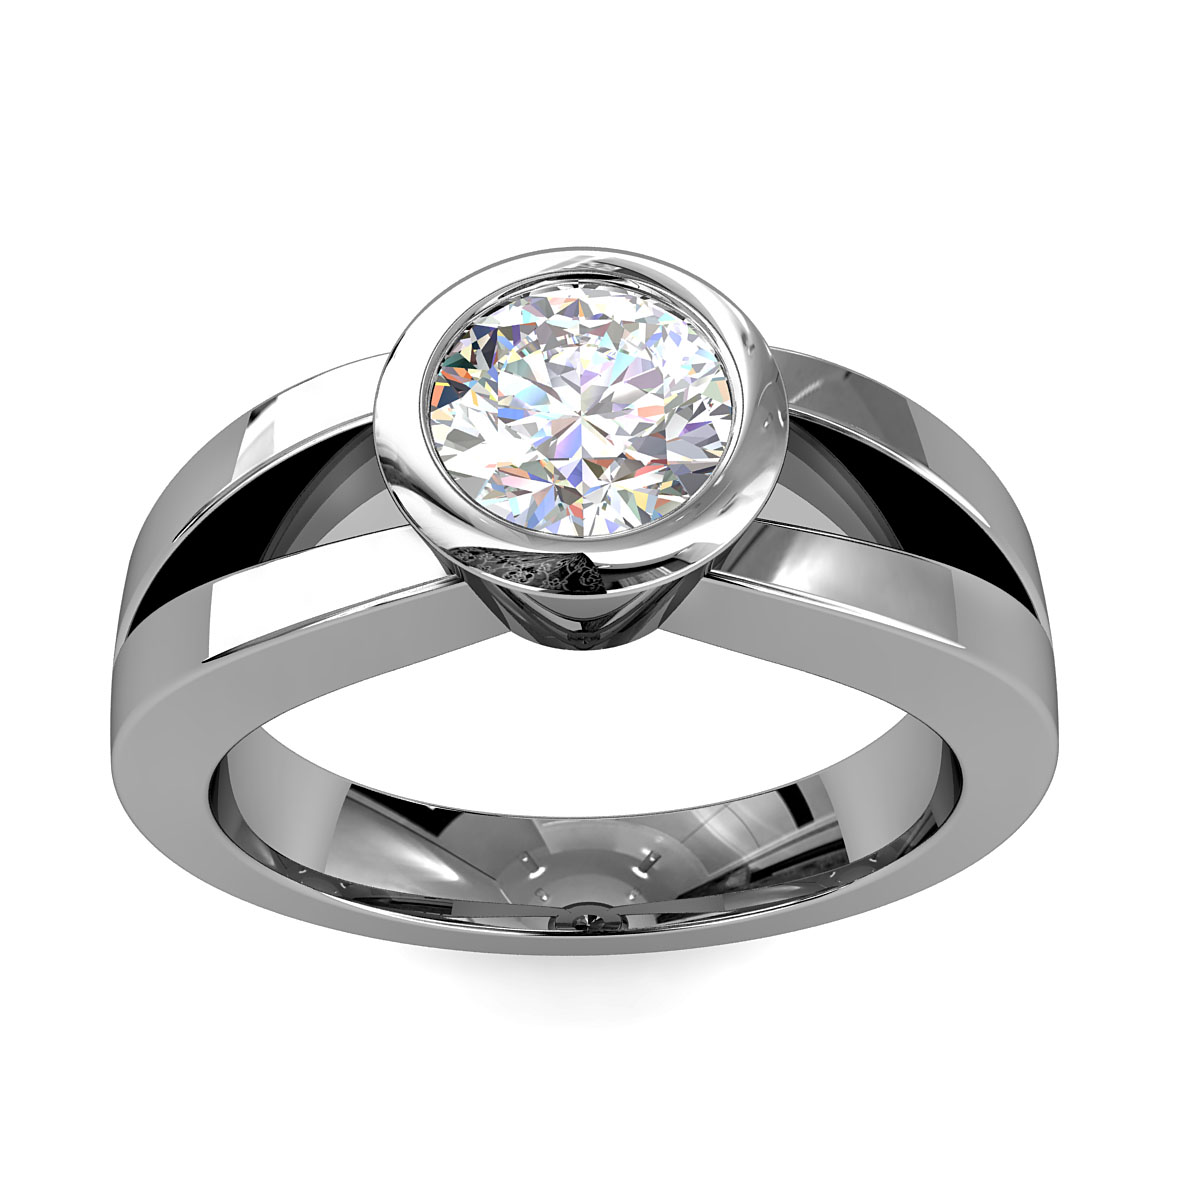 Round Brilliant Cut Solitaire Diamond Engagement Ring, Bezel Set on a Split Band with Solid Undersetting.